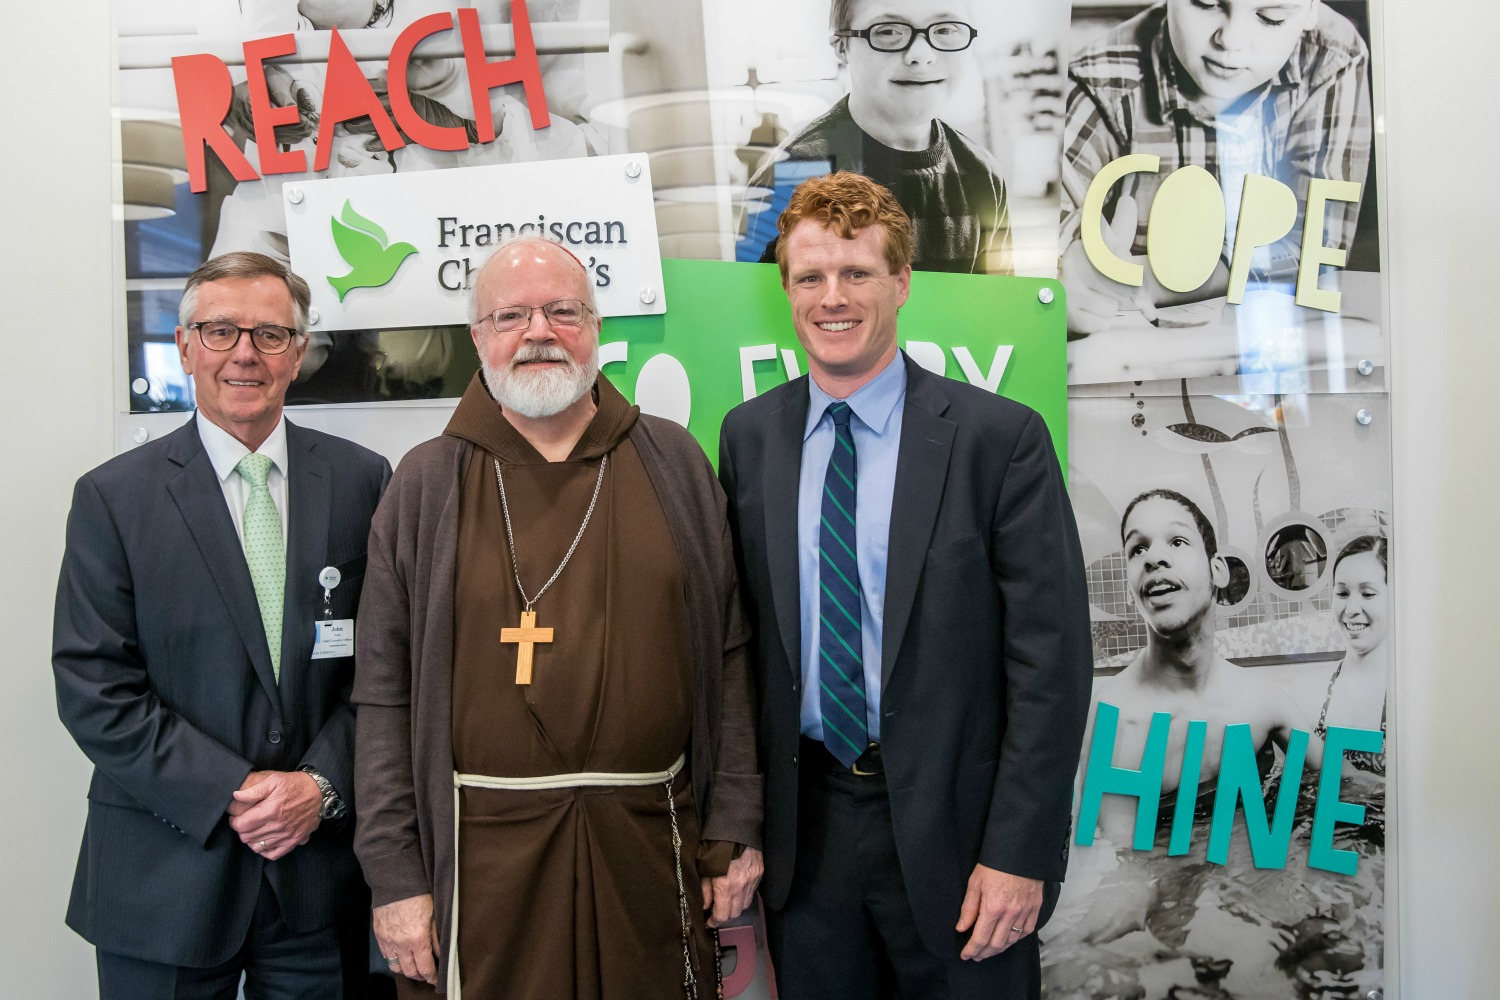 Franciscan Children's President and CEO John Nash, Archbishop of Boston Cardinal Sean O'Malley, Congressman Joe Kennedy III